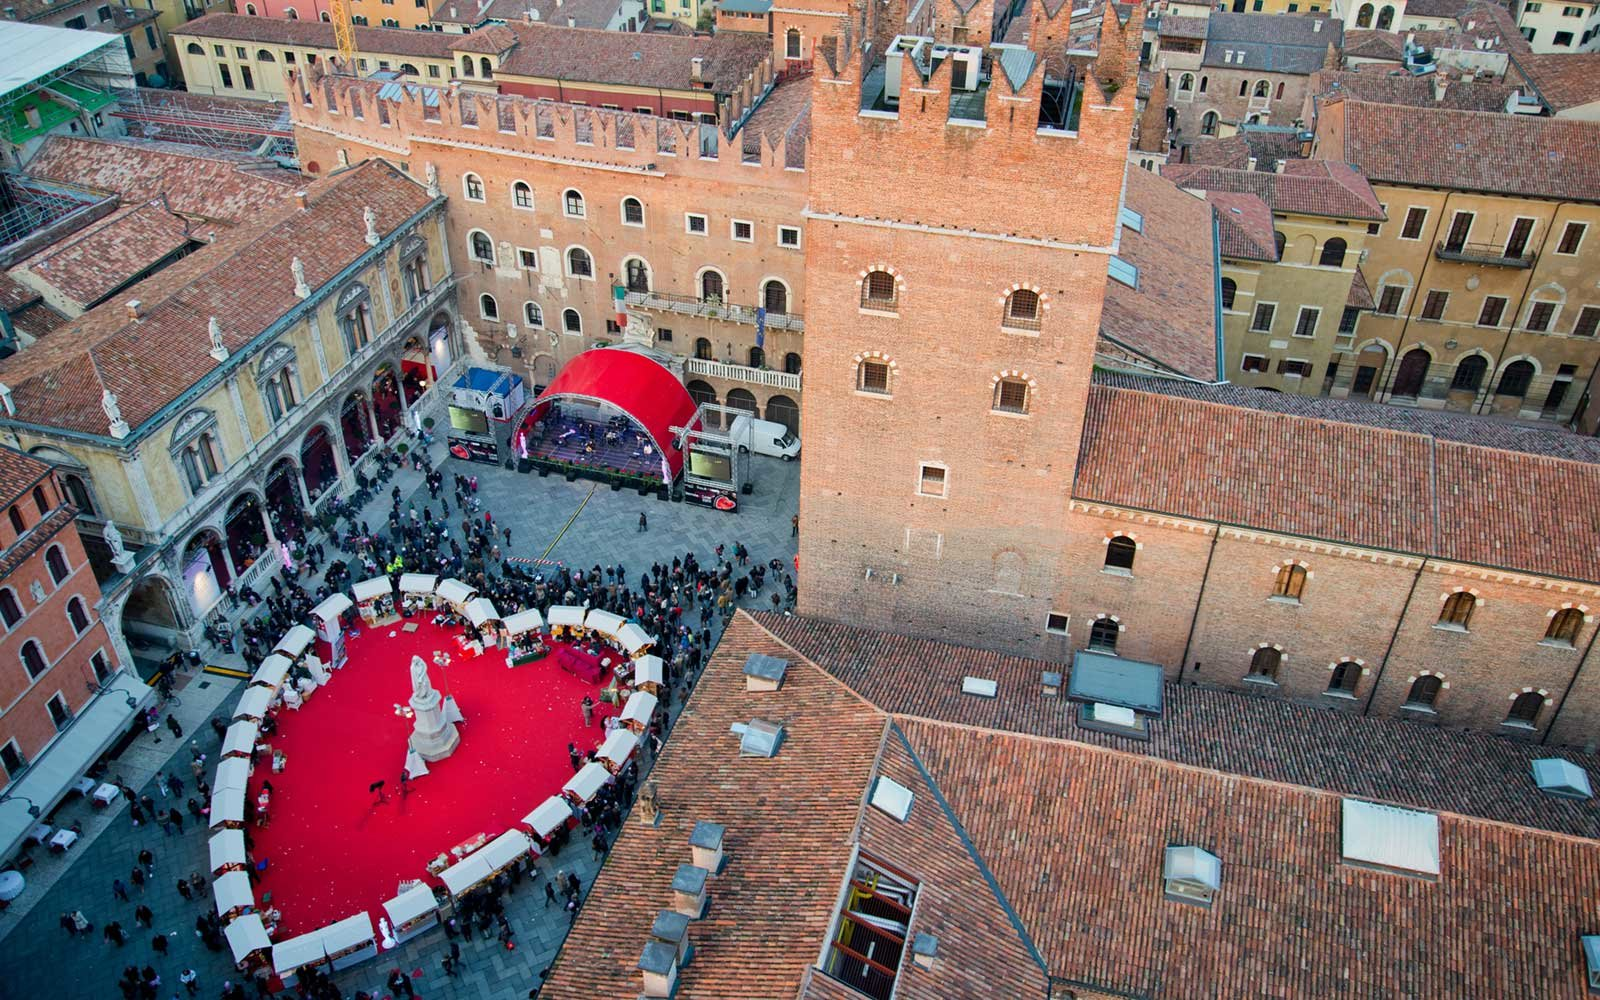 Valentine's Day at Piazza Dante in Verona, Italy